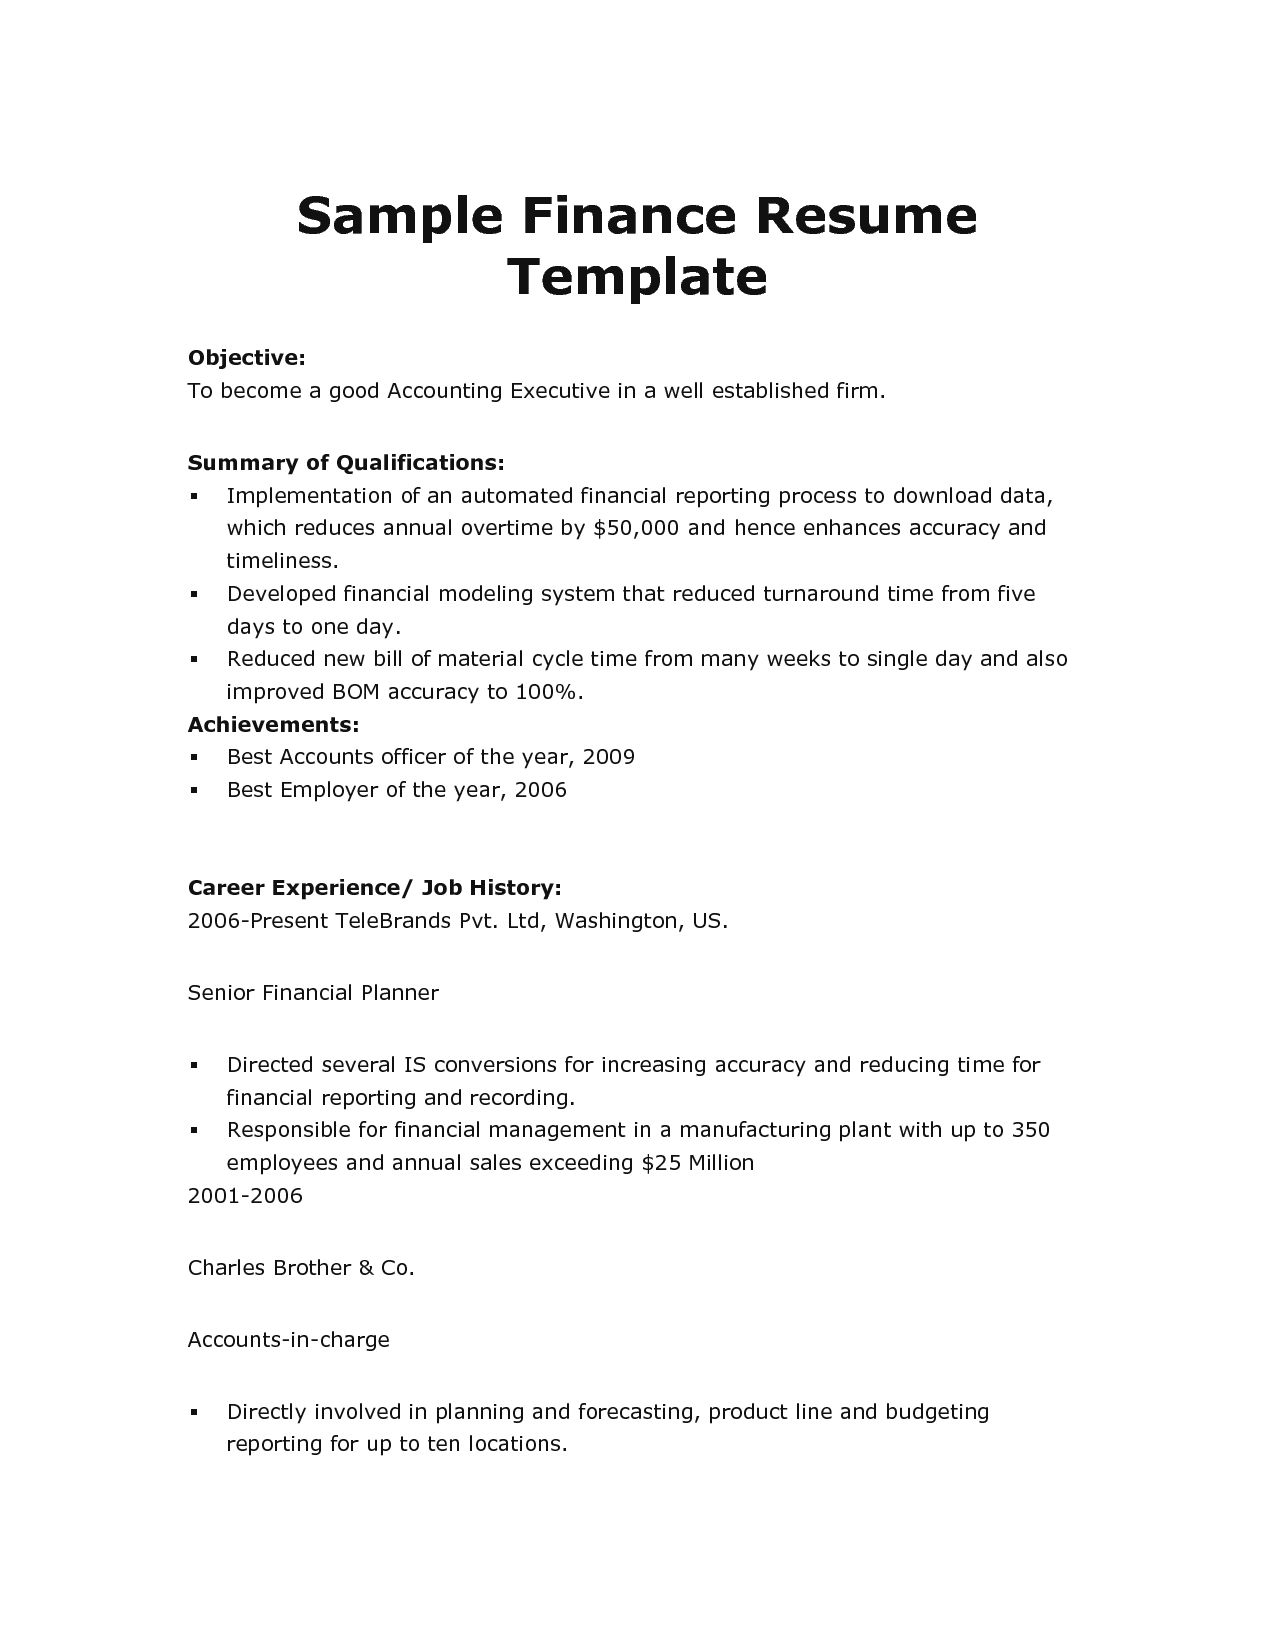 Resume template basic templates cover letter for simple word resume template basic templates cover letter for simple word layout pink breathtaking download eas madrichimfo Choice Image